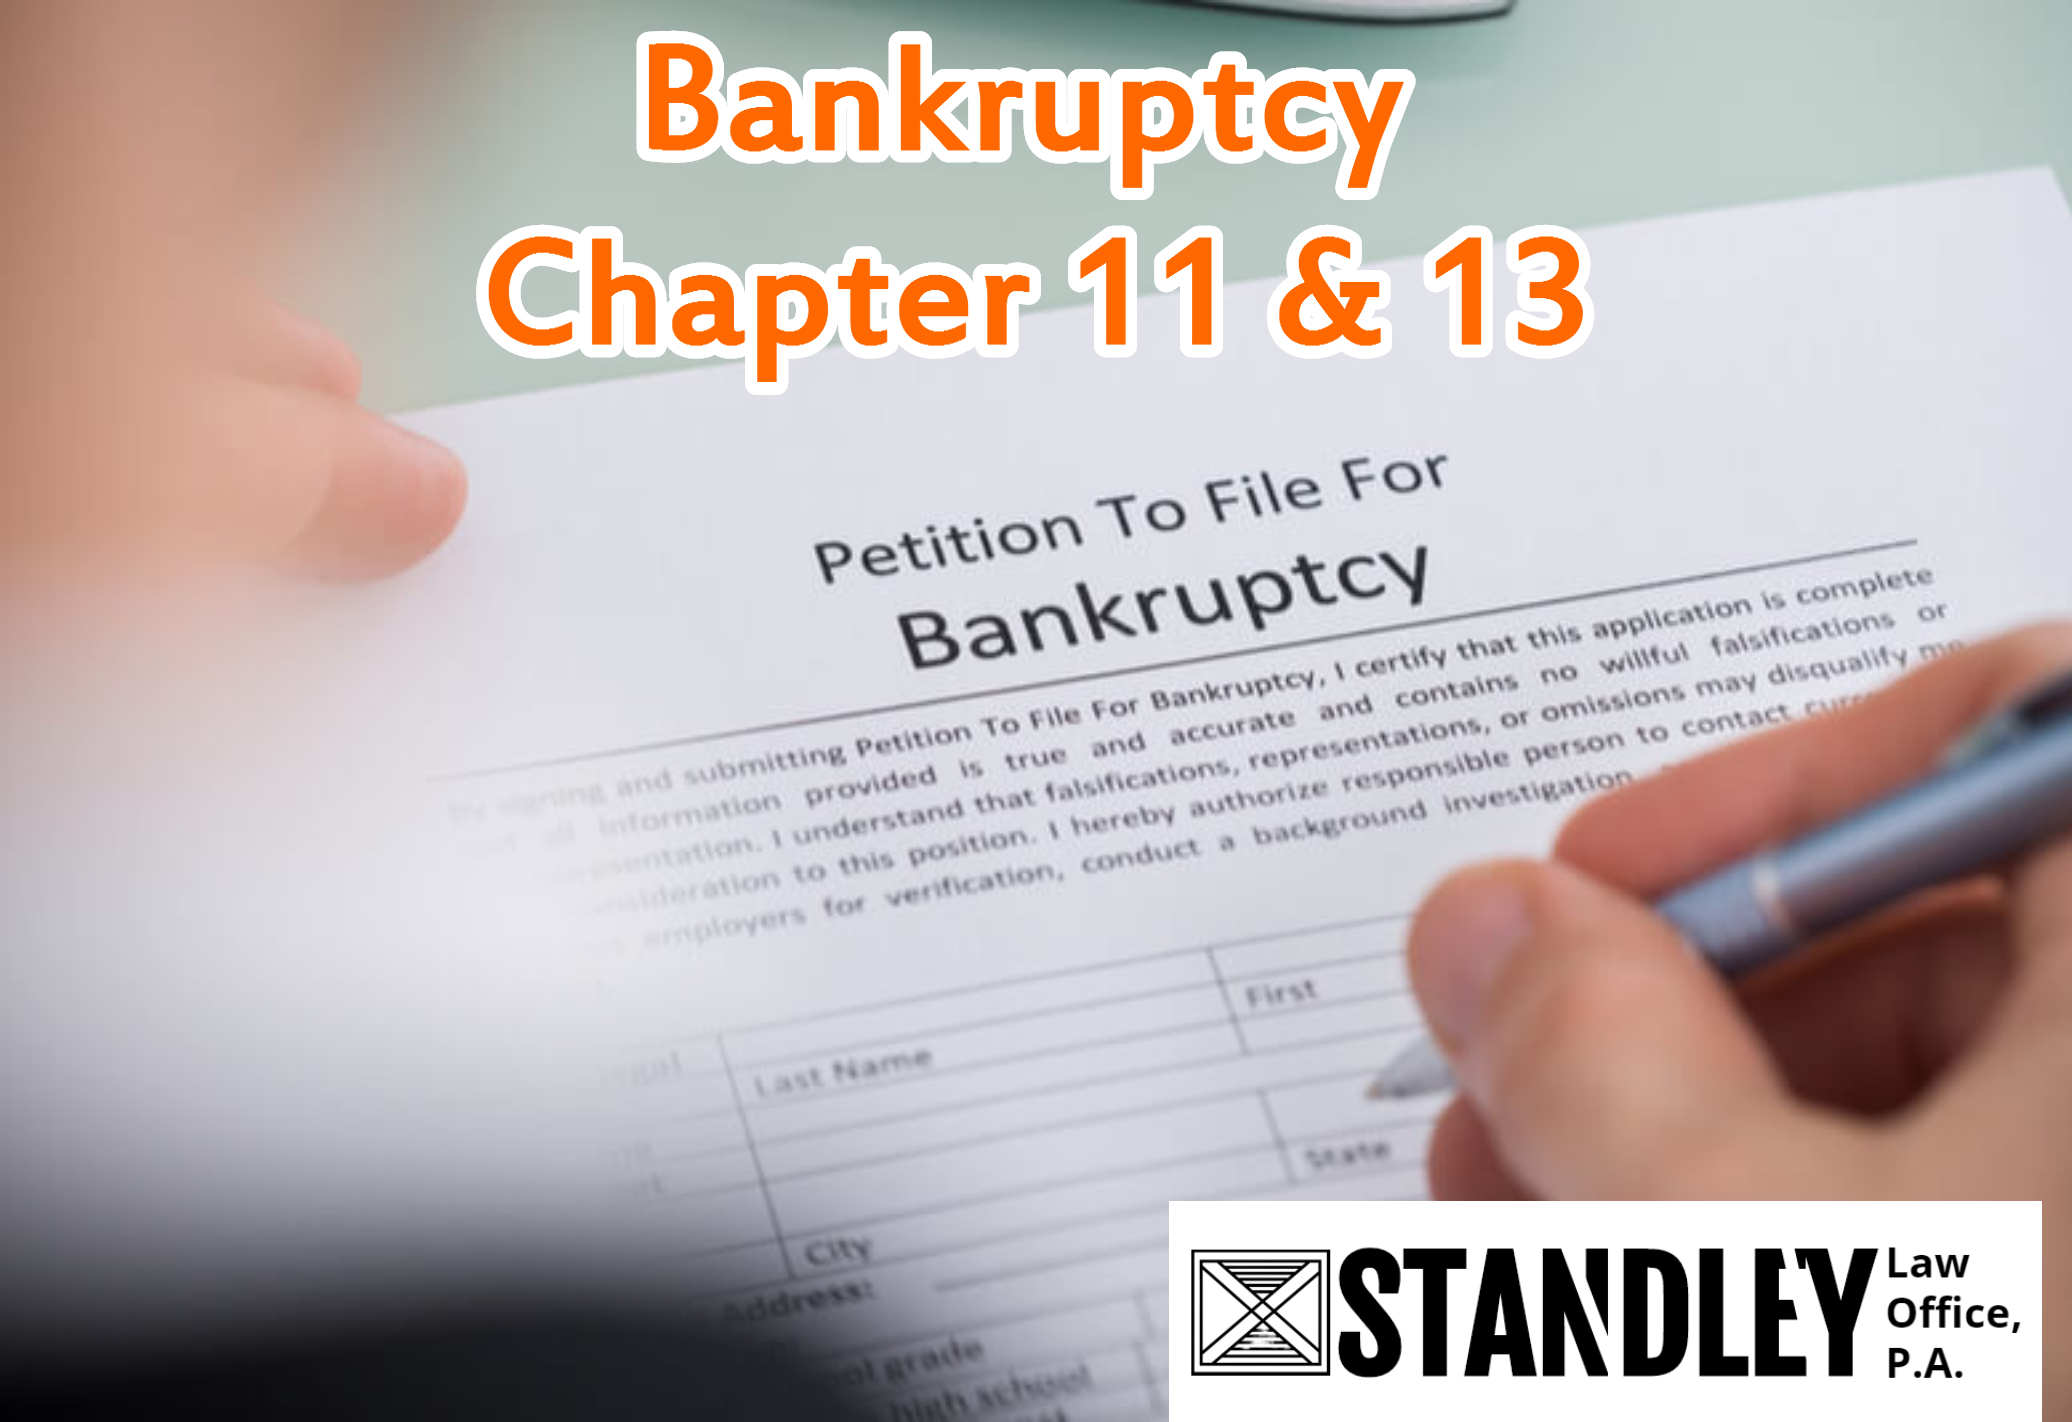 Bankruptcy Chapter 11 & 13